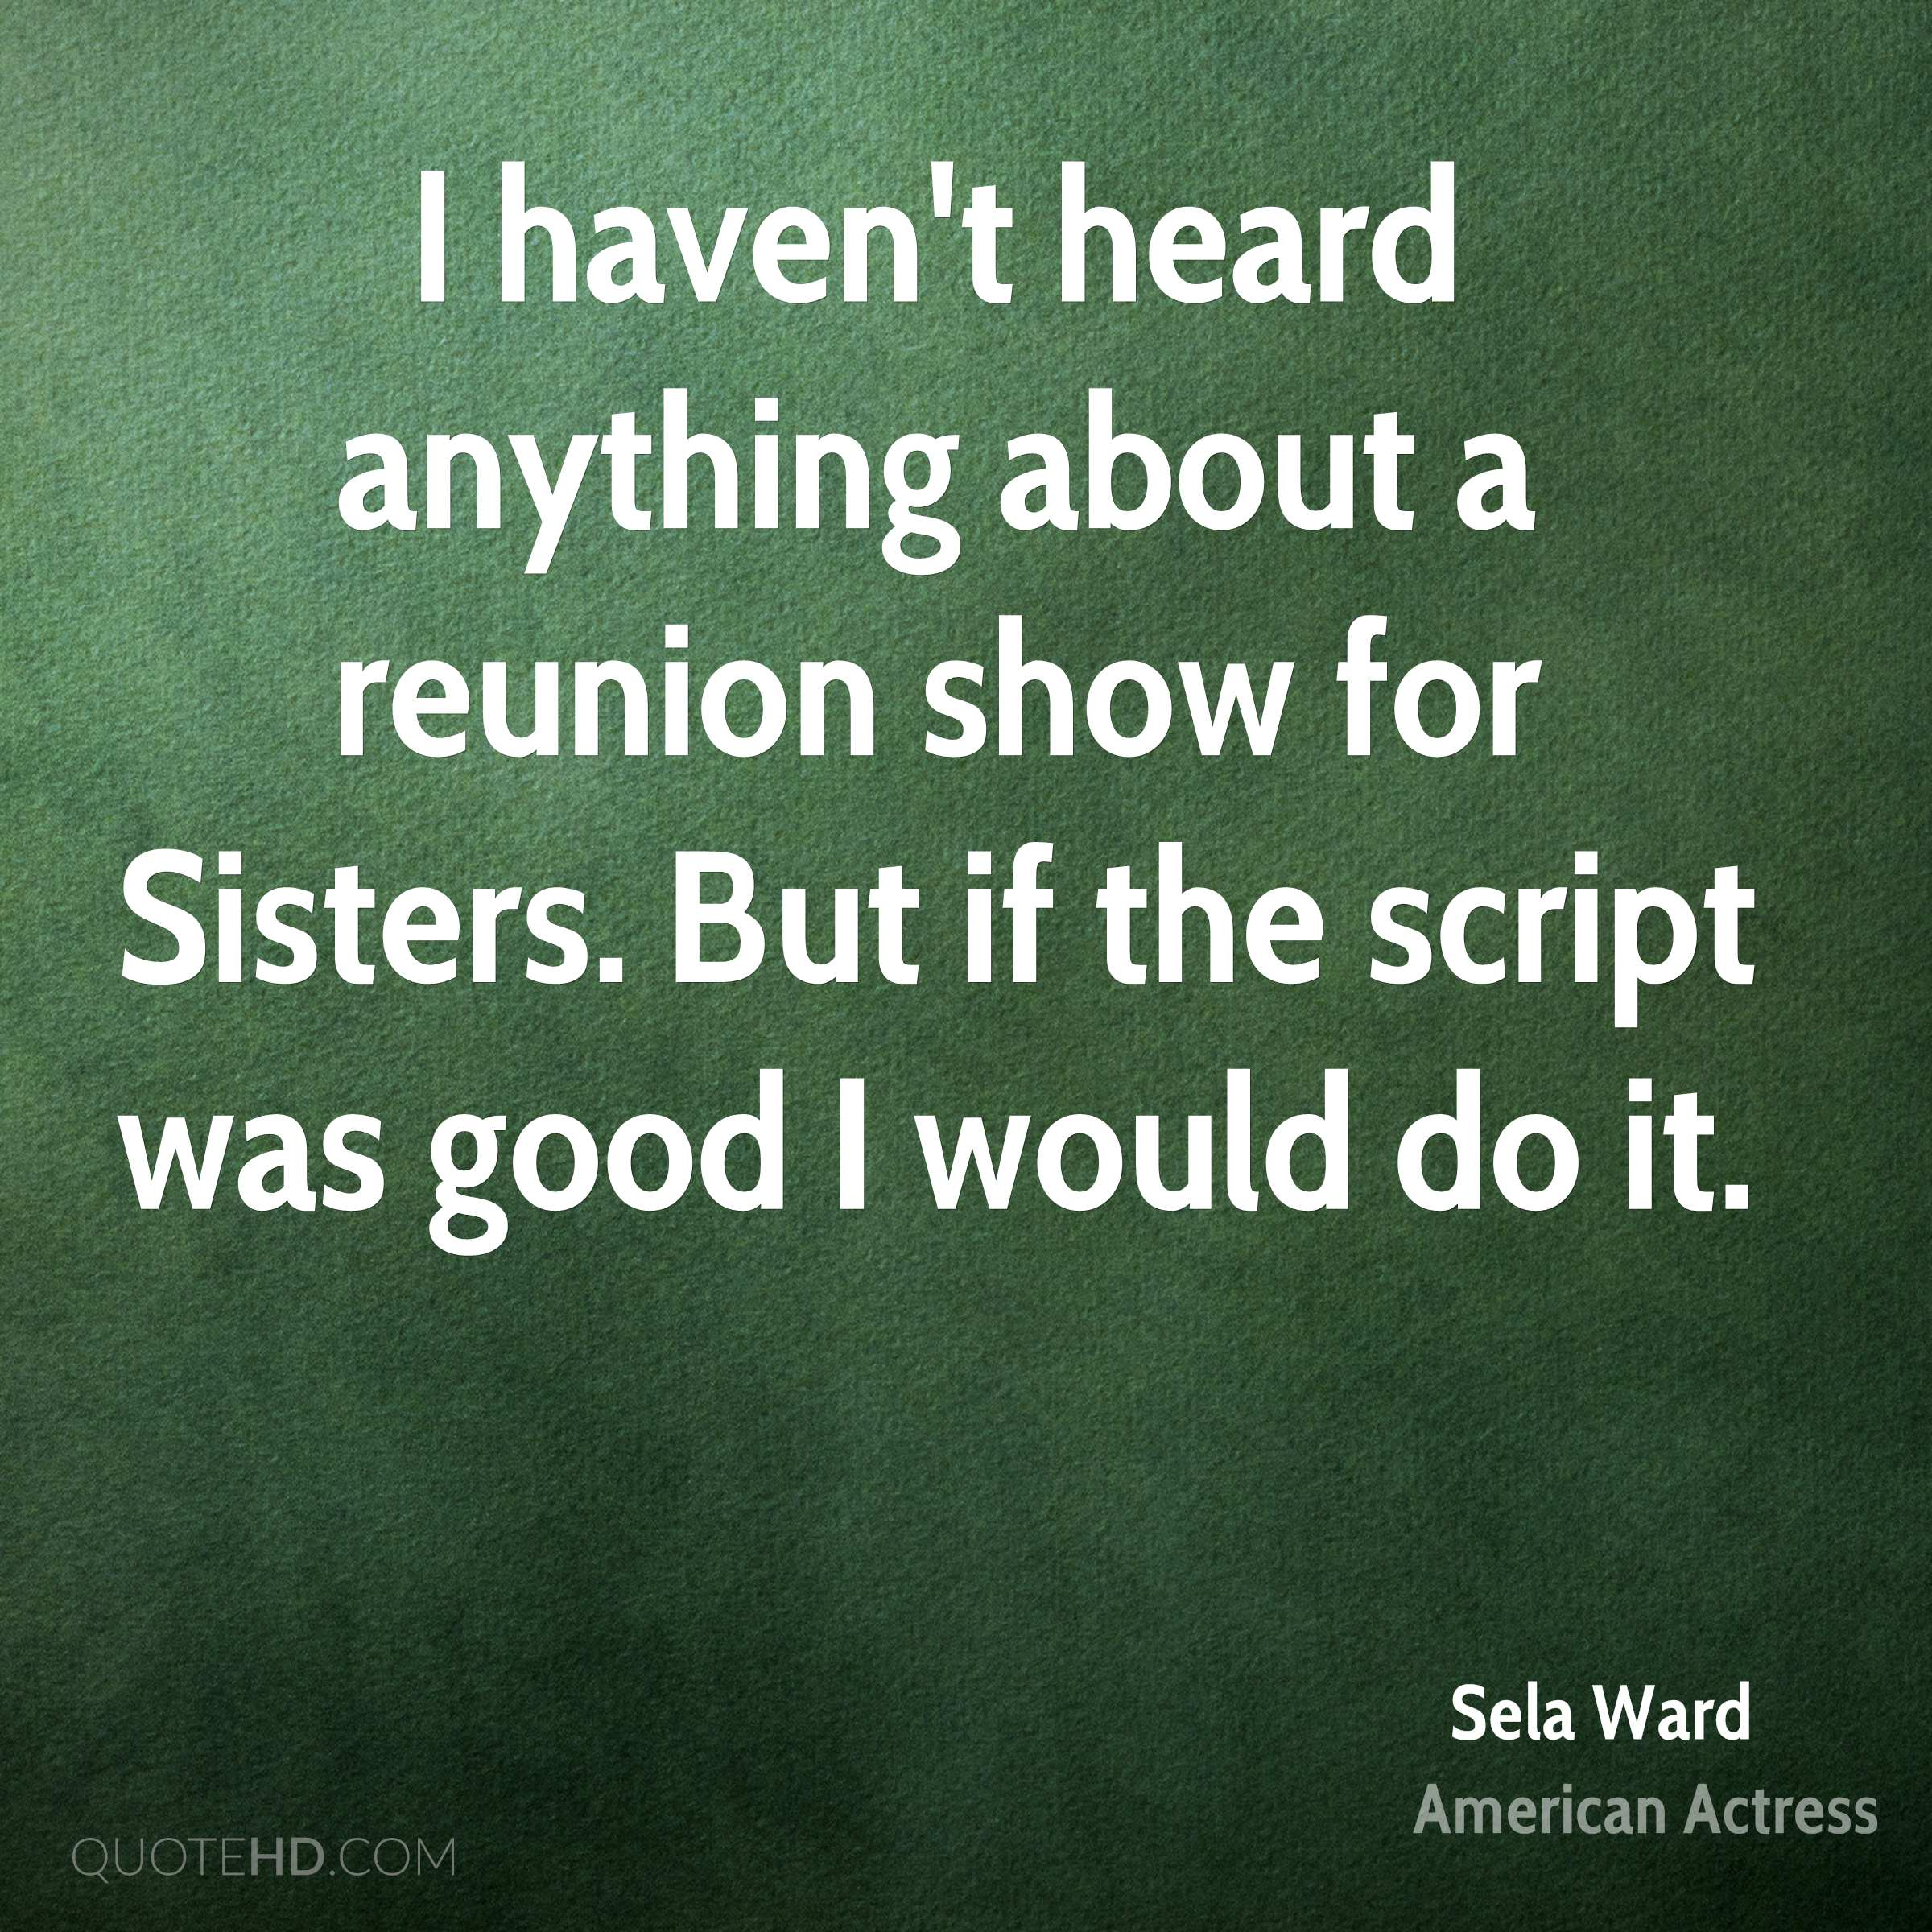 I haven't heard anything about a reunion show for Sisters. But if the script was good I would do it.